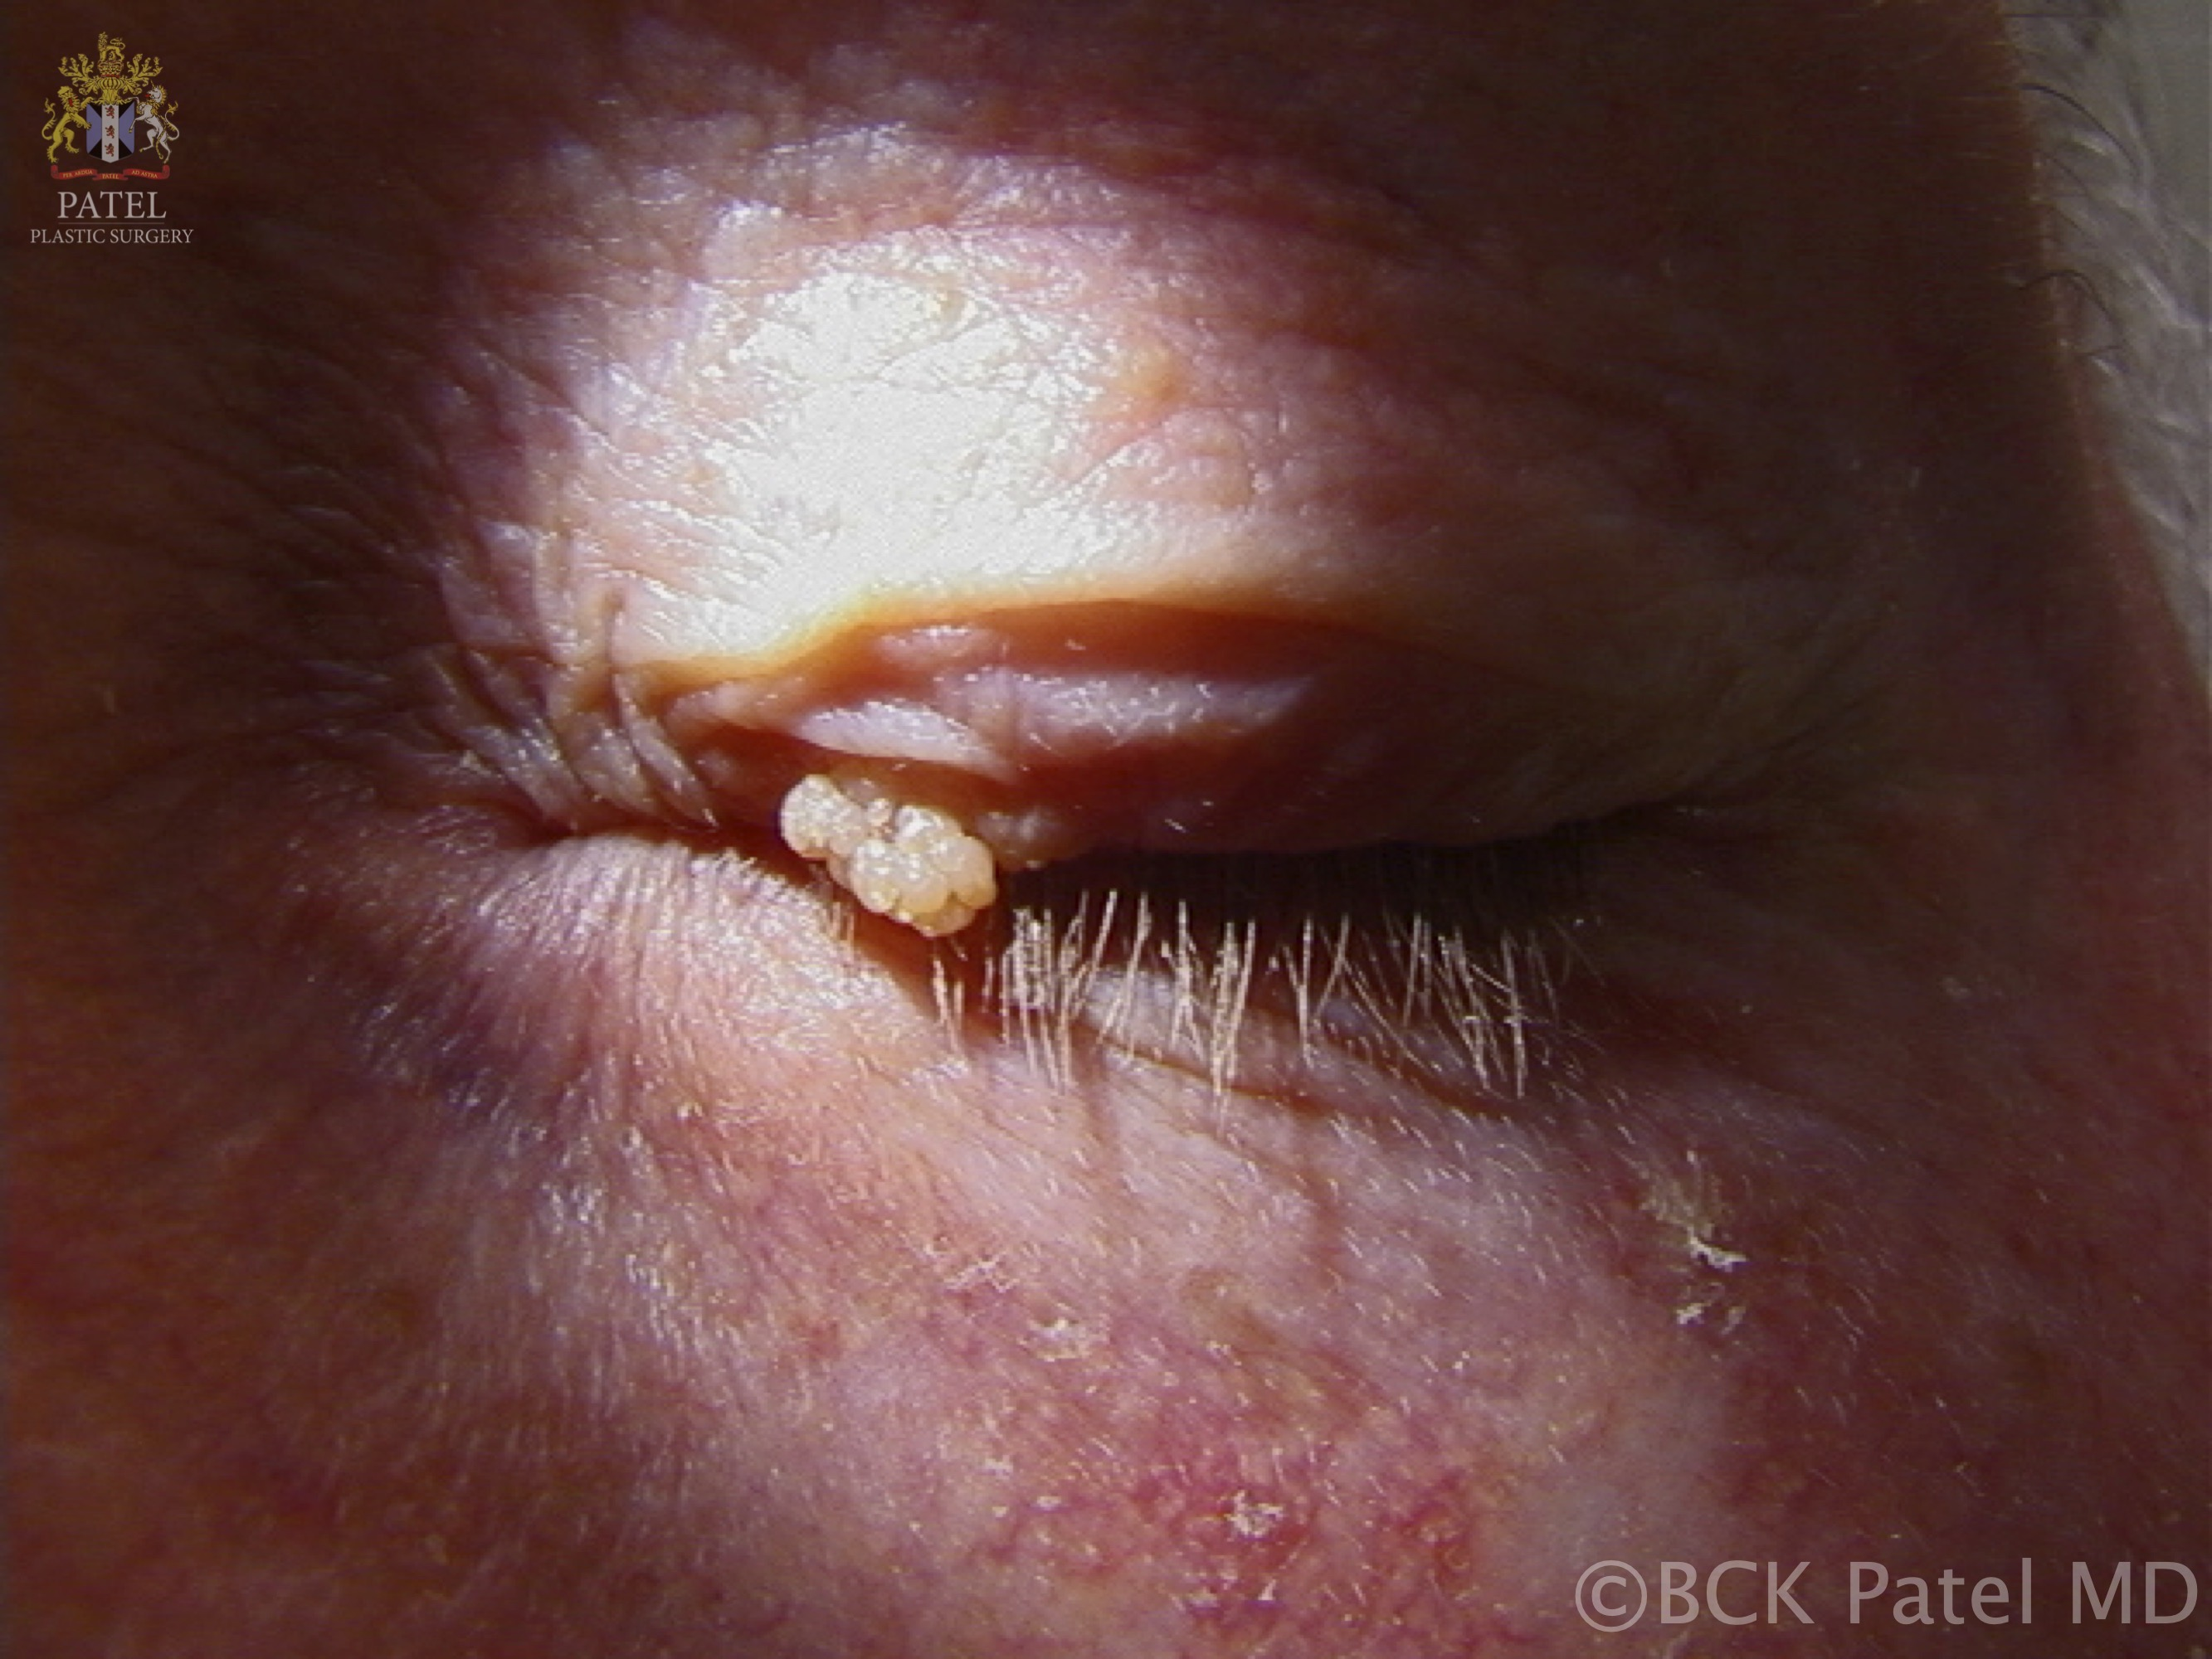 Viral papilloma: caused by human papilloma virus. The growths tend to be pedunculated and irregular and may shed. On eyelids and eyelid margins, shedding may result in other lesions. They are usually skin-colored and if they grow near the lacrimal puncta, they can grow into the canaliculus and result in an inverted papilloma with growth down the nasolacrimal system